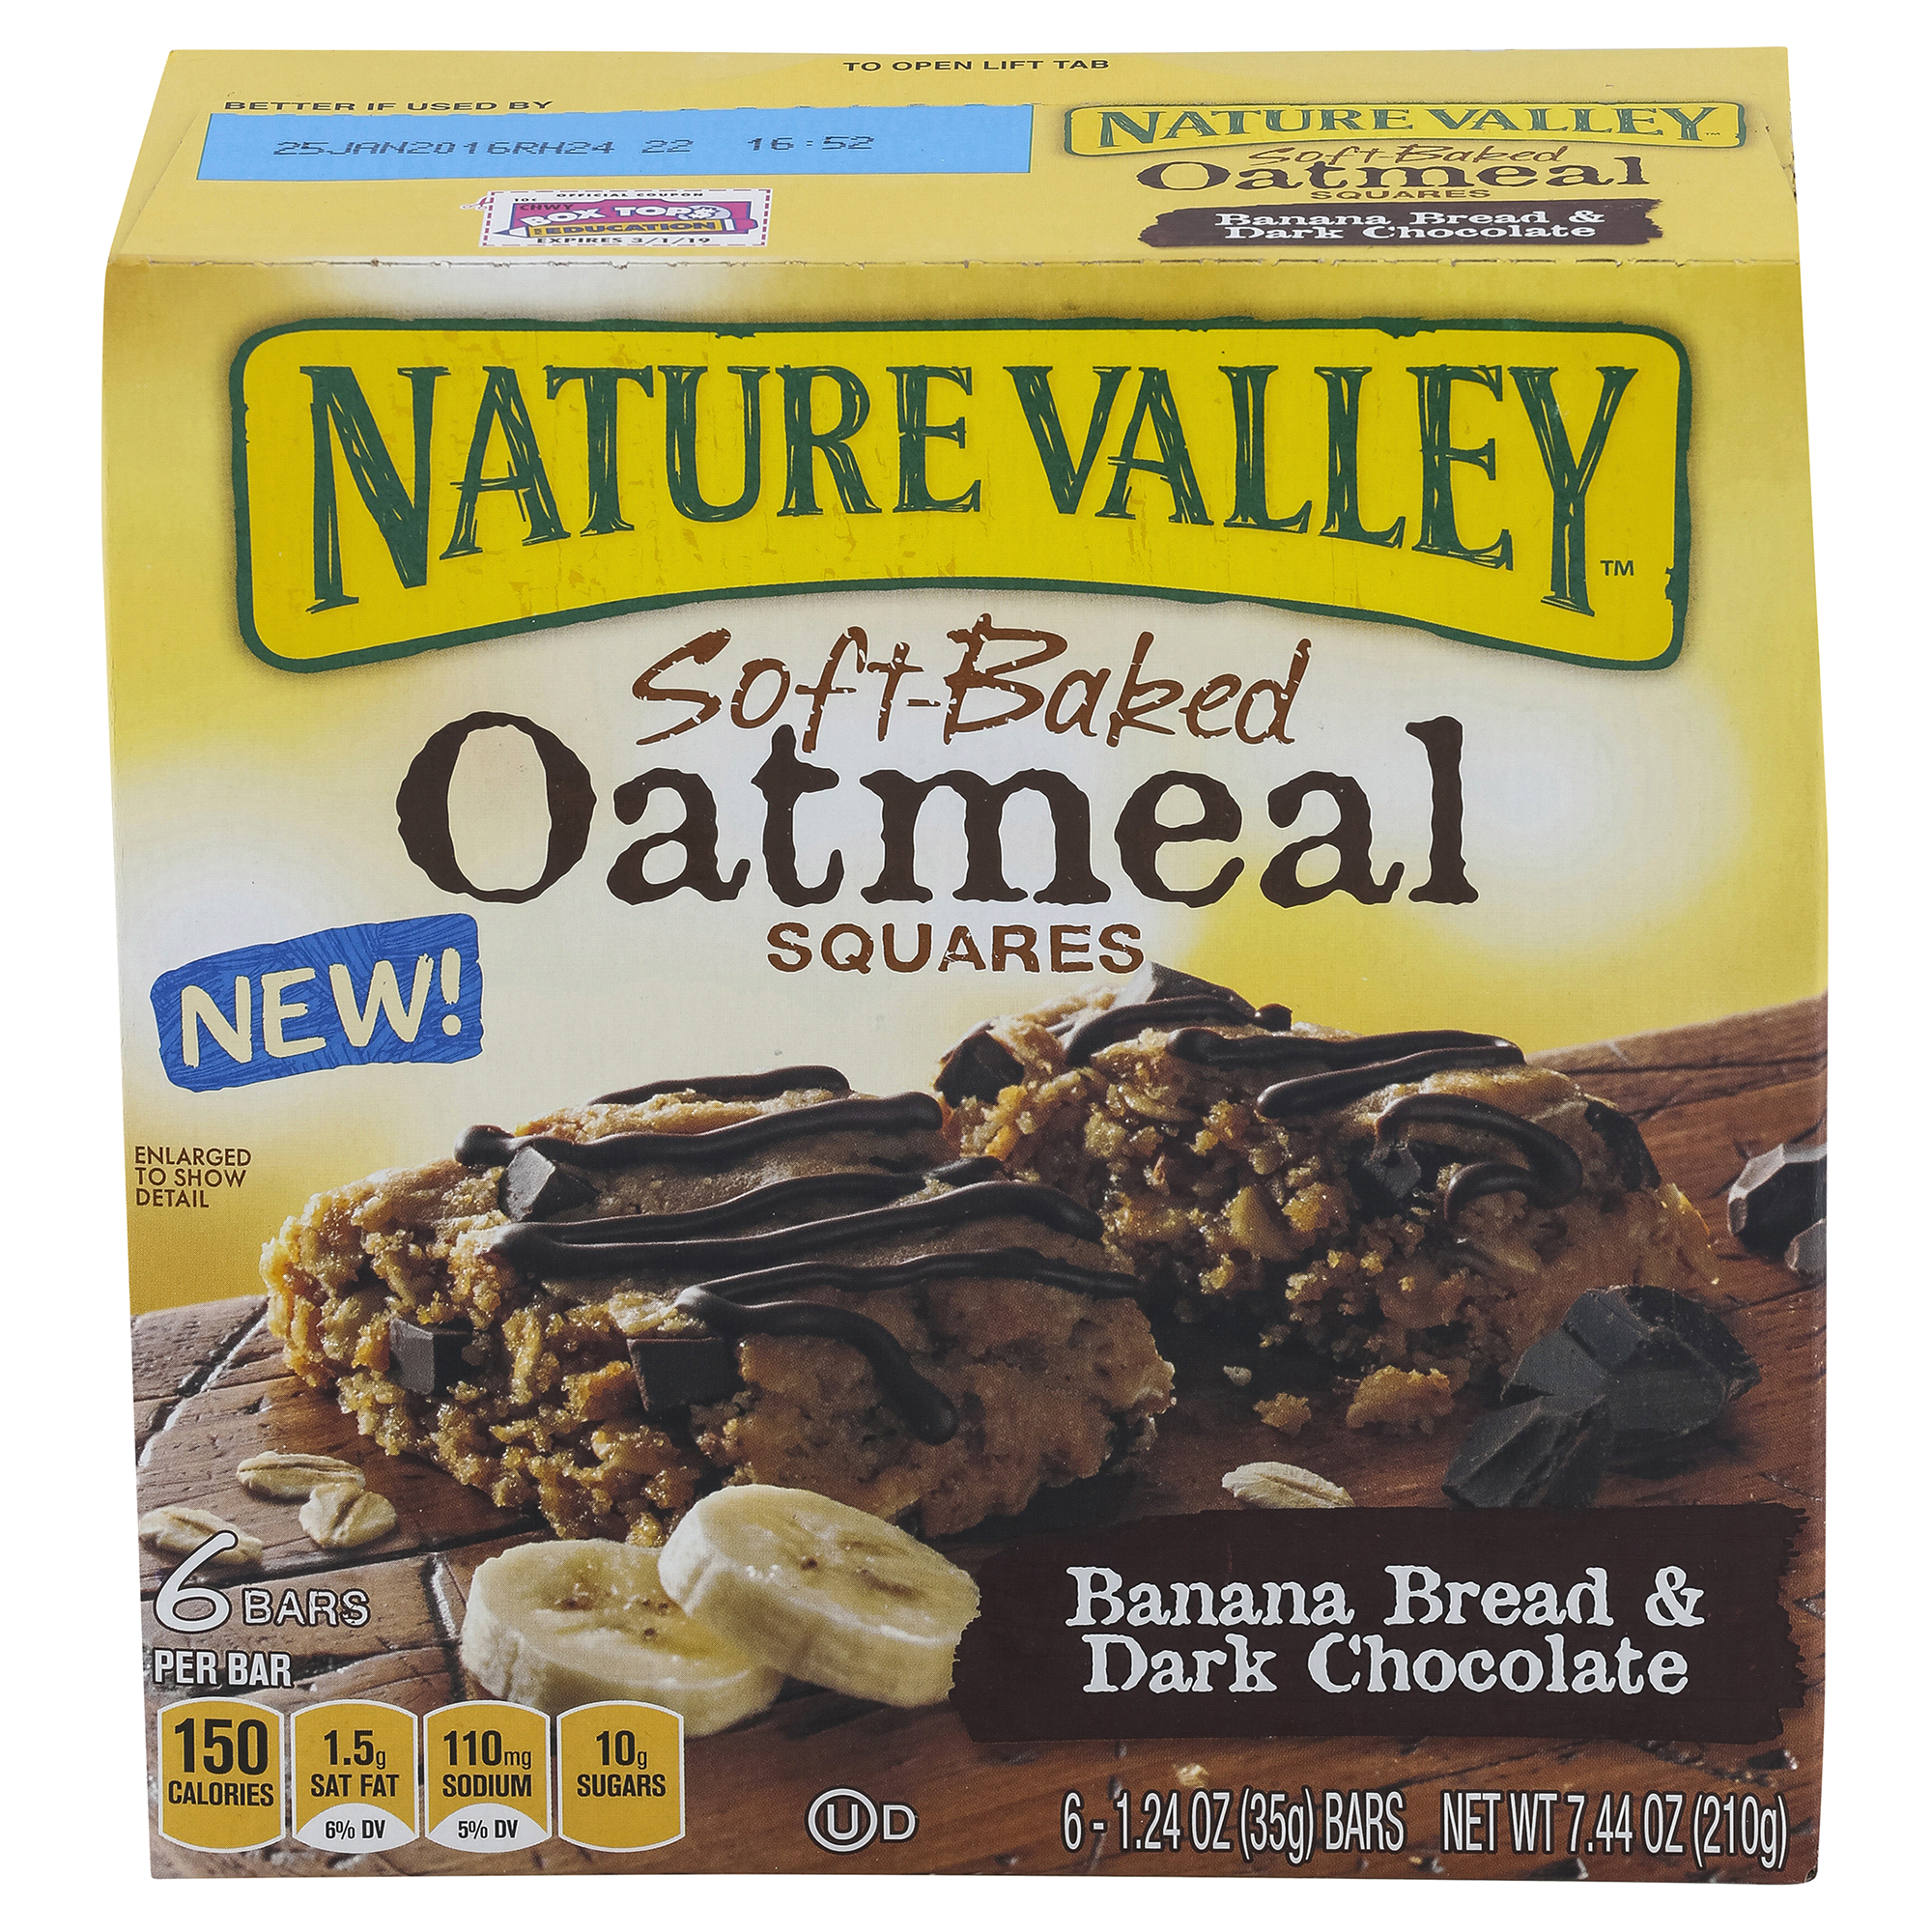 Natural Valley Soft Baked Oatmeal Squares Banana Bread & Dark